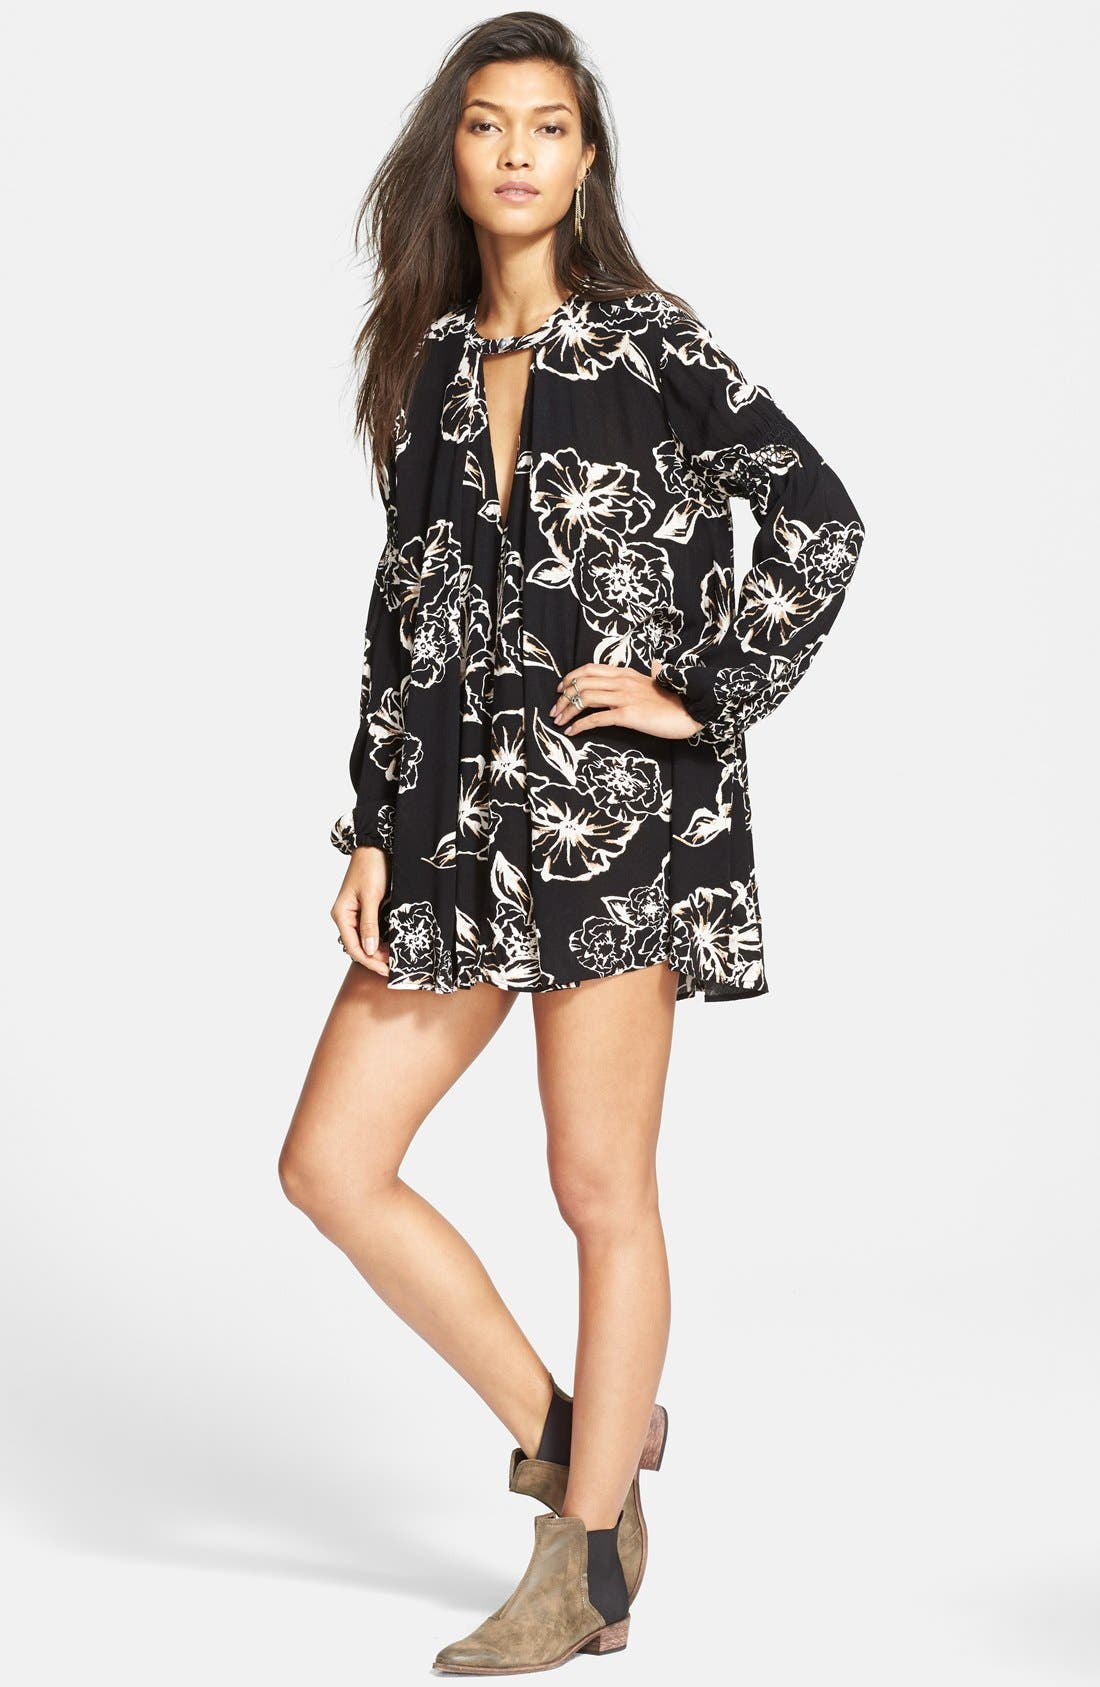 FREE PEOPLE 'Snap Out Of It' Swing Top, Main, color, 177